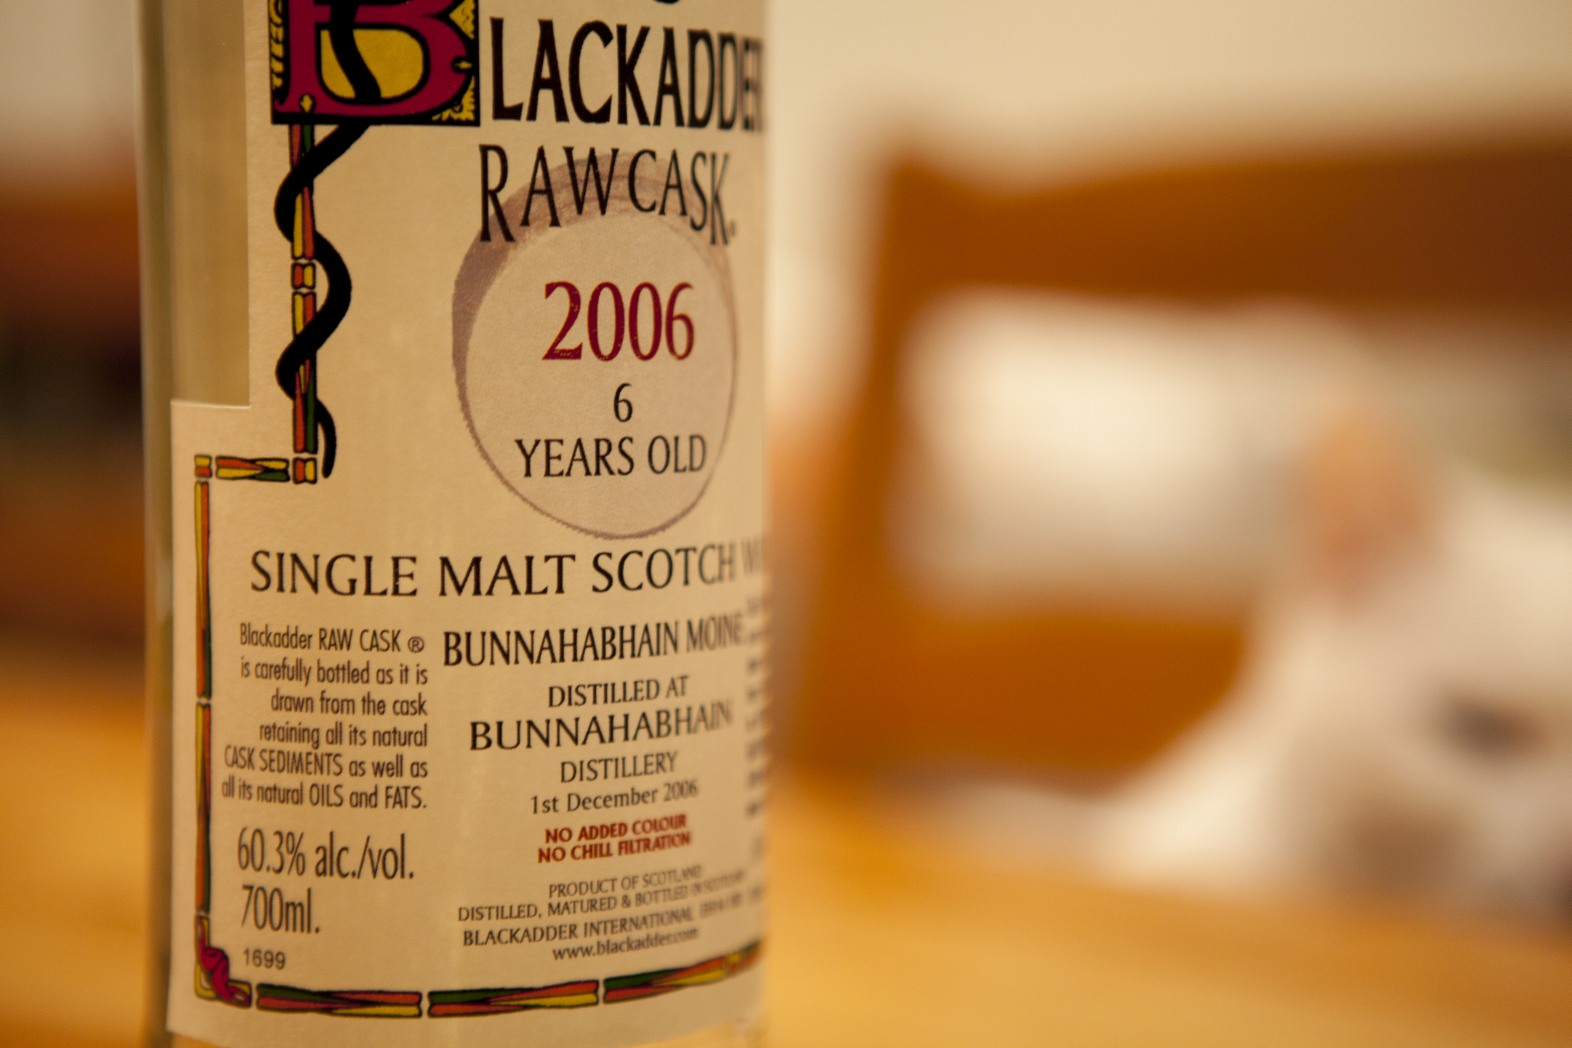 Blackadder Bunnahabhain Moine 6yr Raw Cask Whisky Review